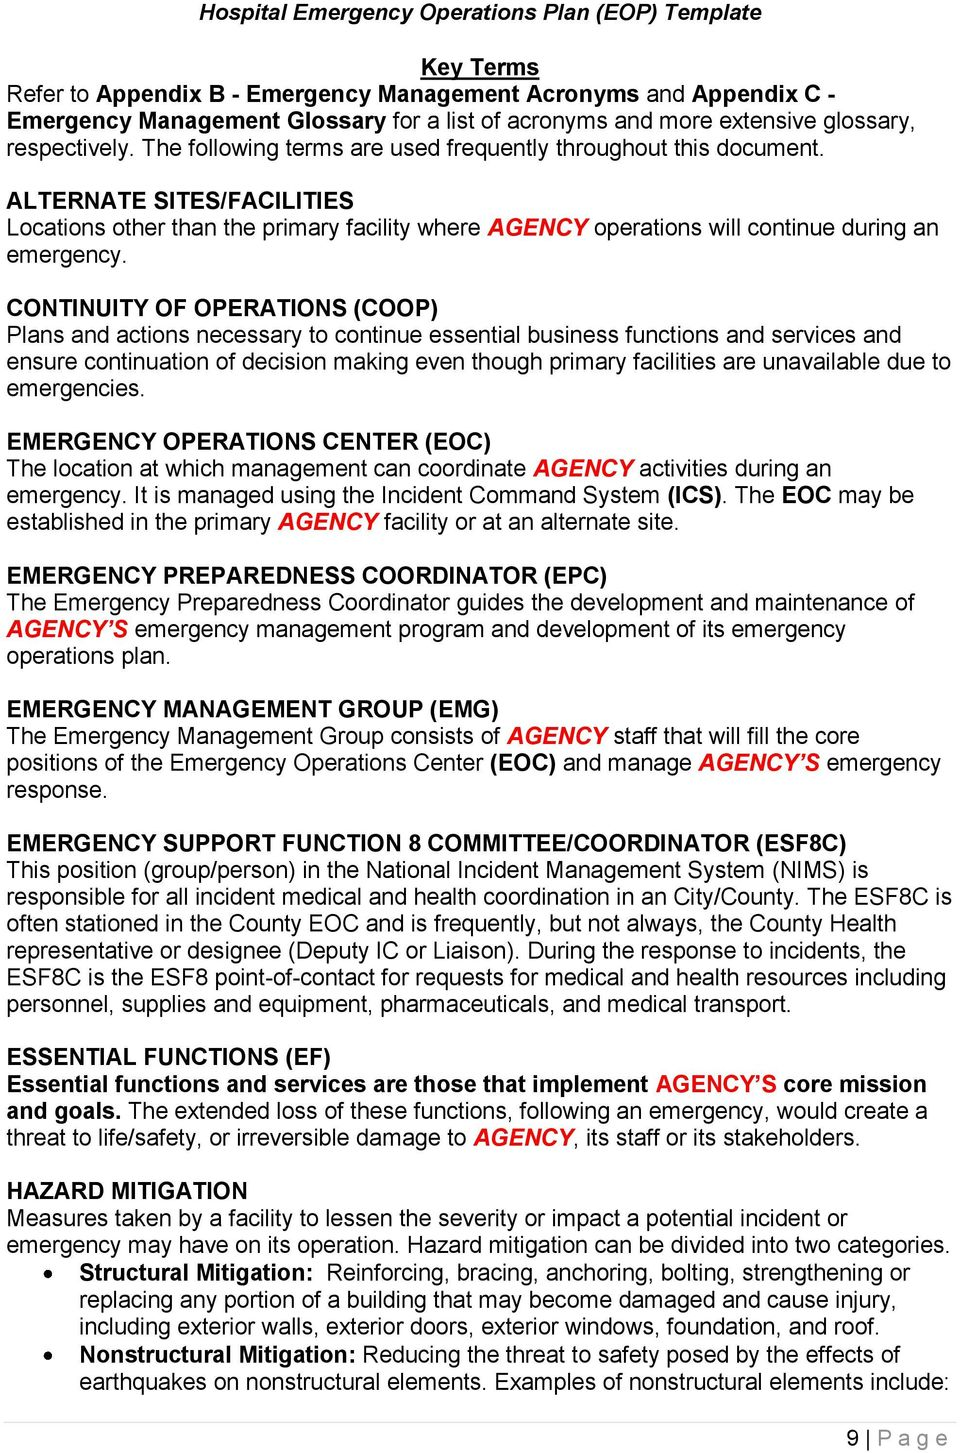 Agency Name> Hospital Emergency Operations Plan (EOP) TEMPLATE - PDF